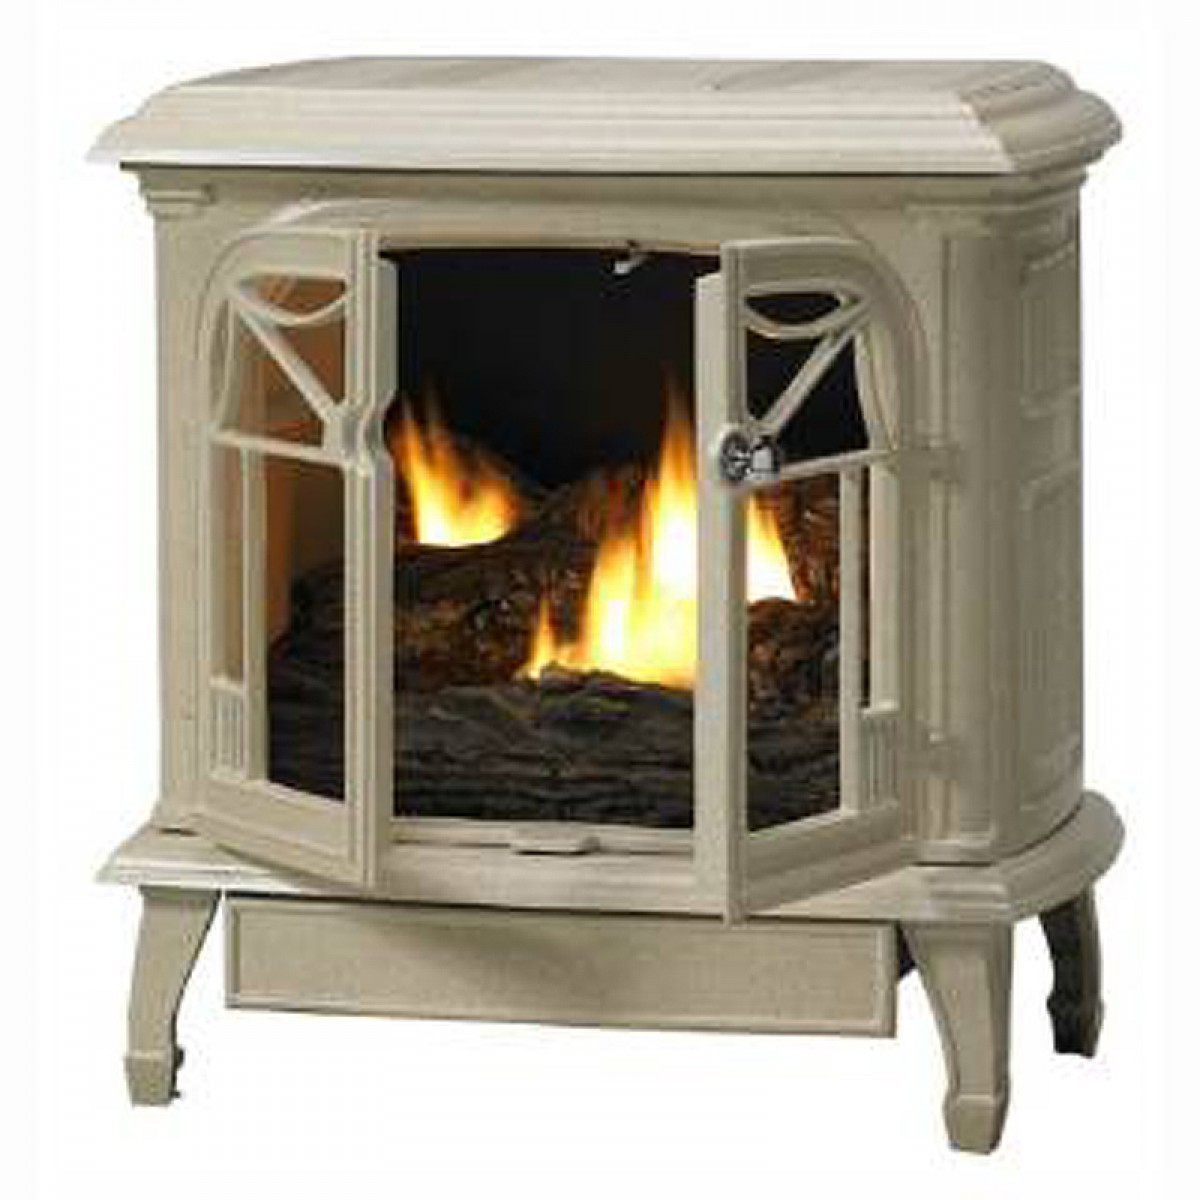 IHP Superior CISAS Aged Silver Vent Free Gas Stove